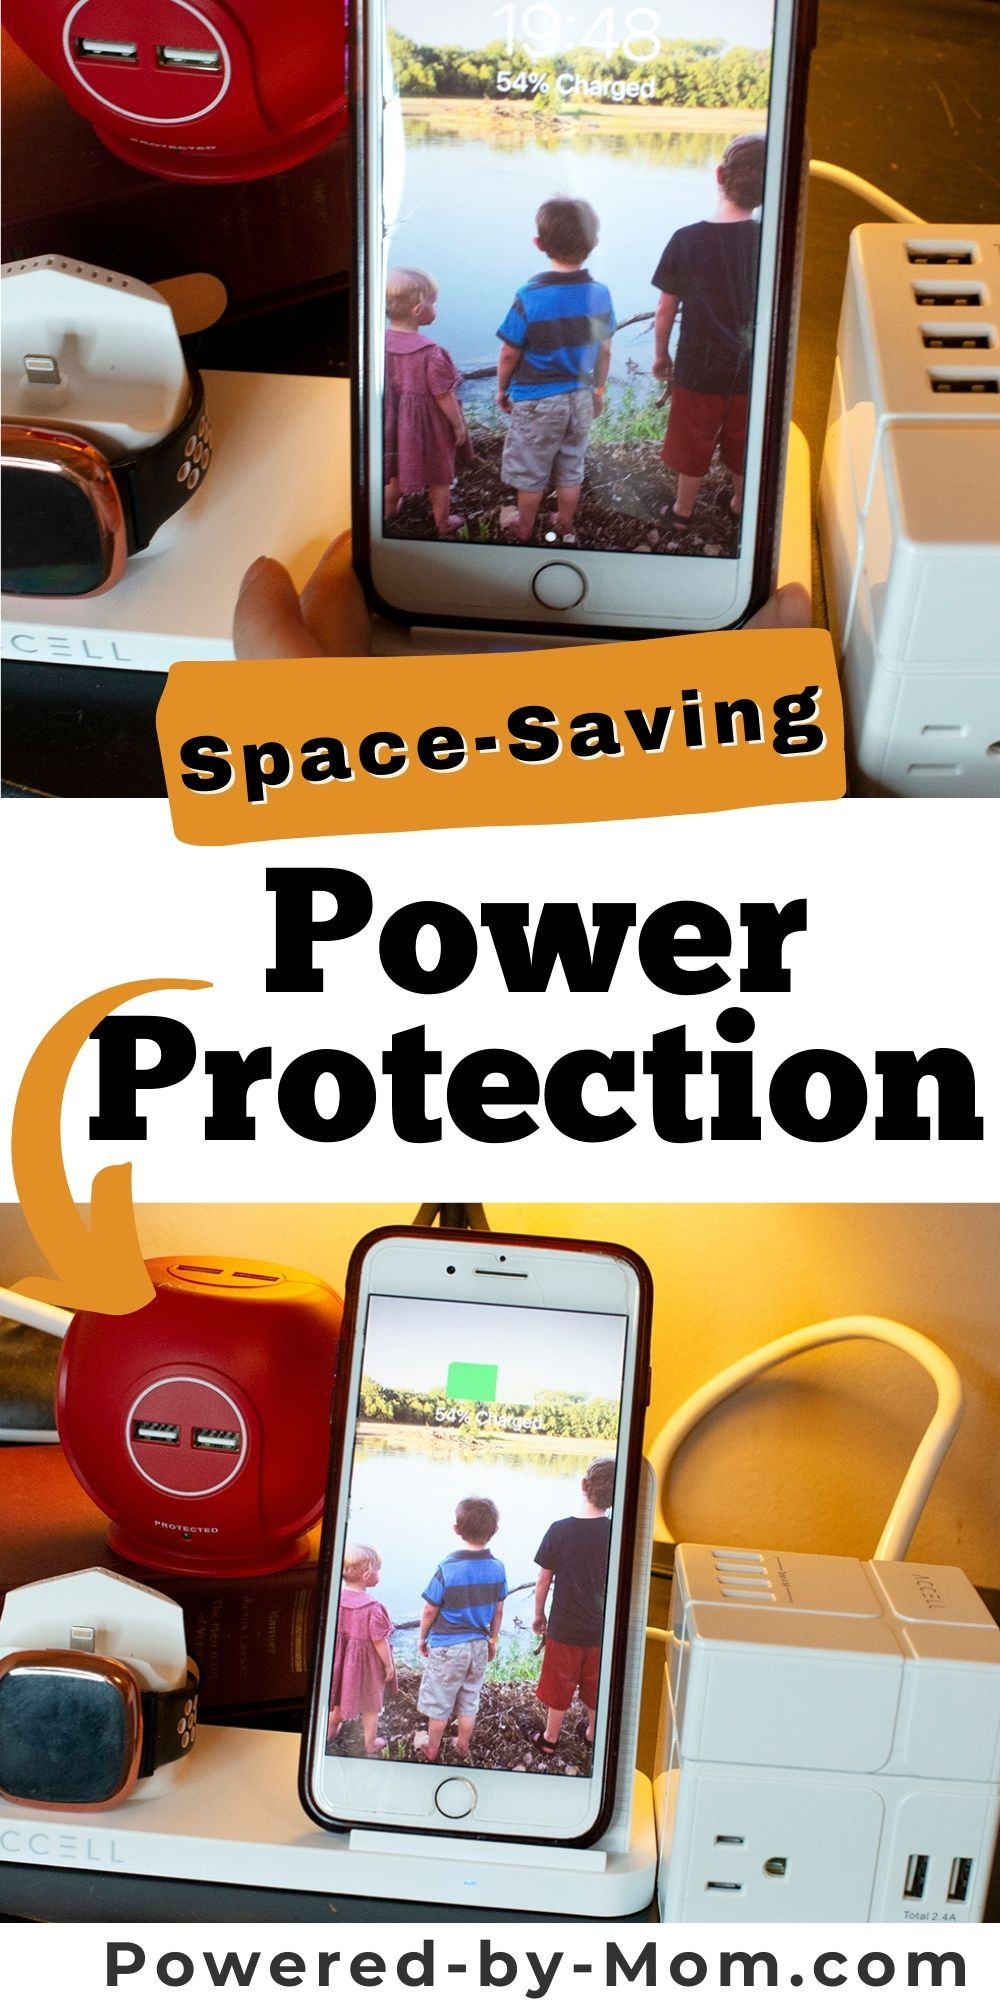 When you need compact power protection these units are so handy to power and charge without taking up a ton of space.